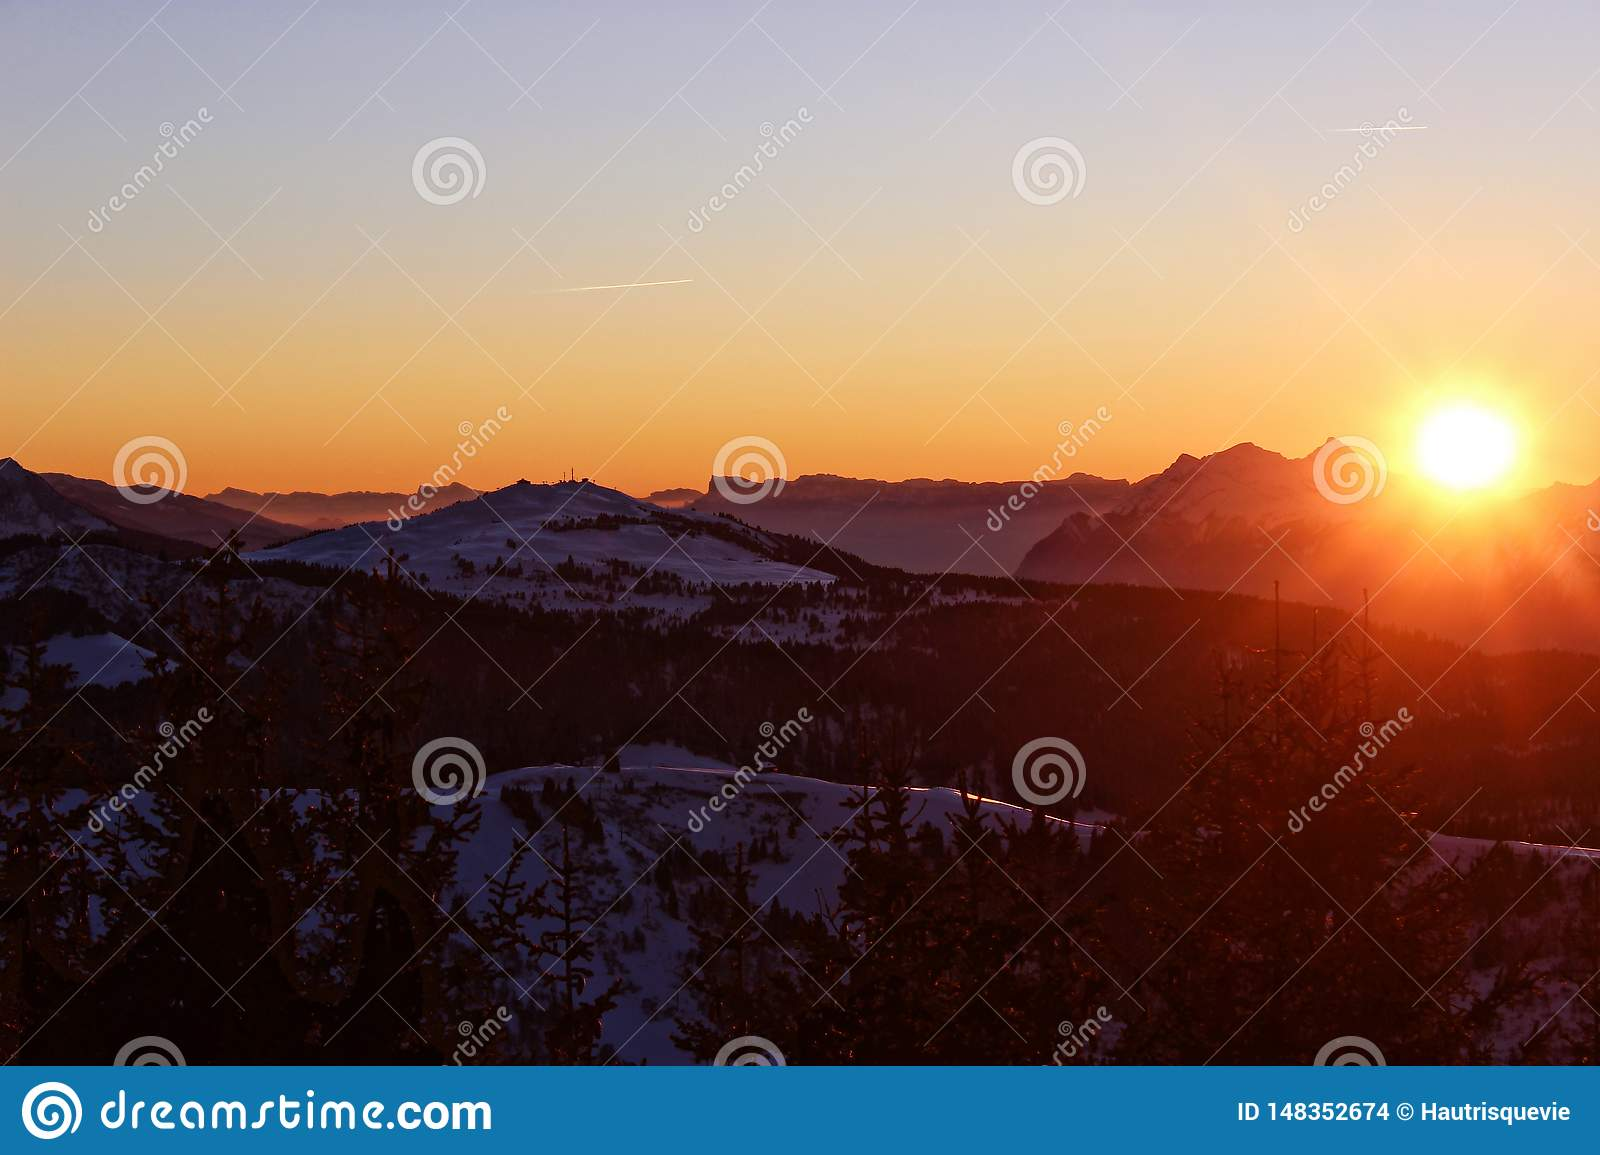 Sunset caress the mountains in the French alps